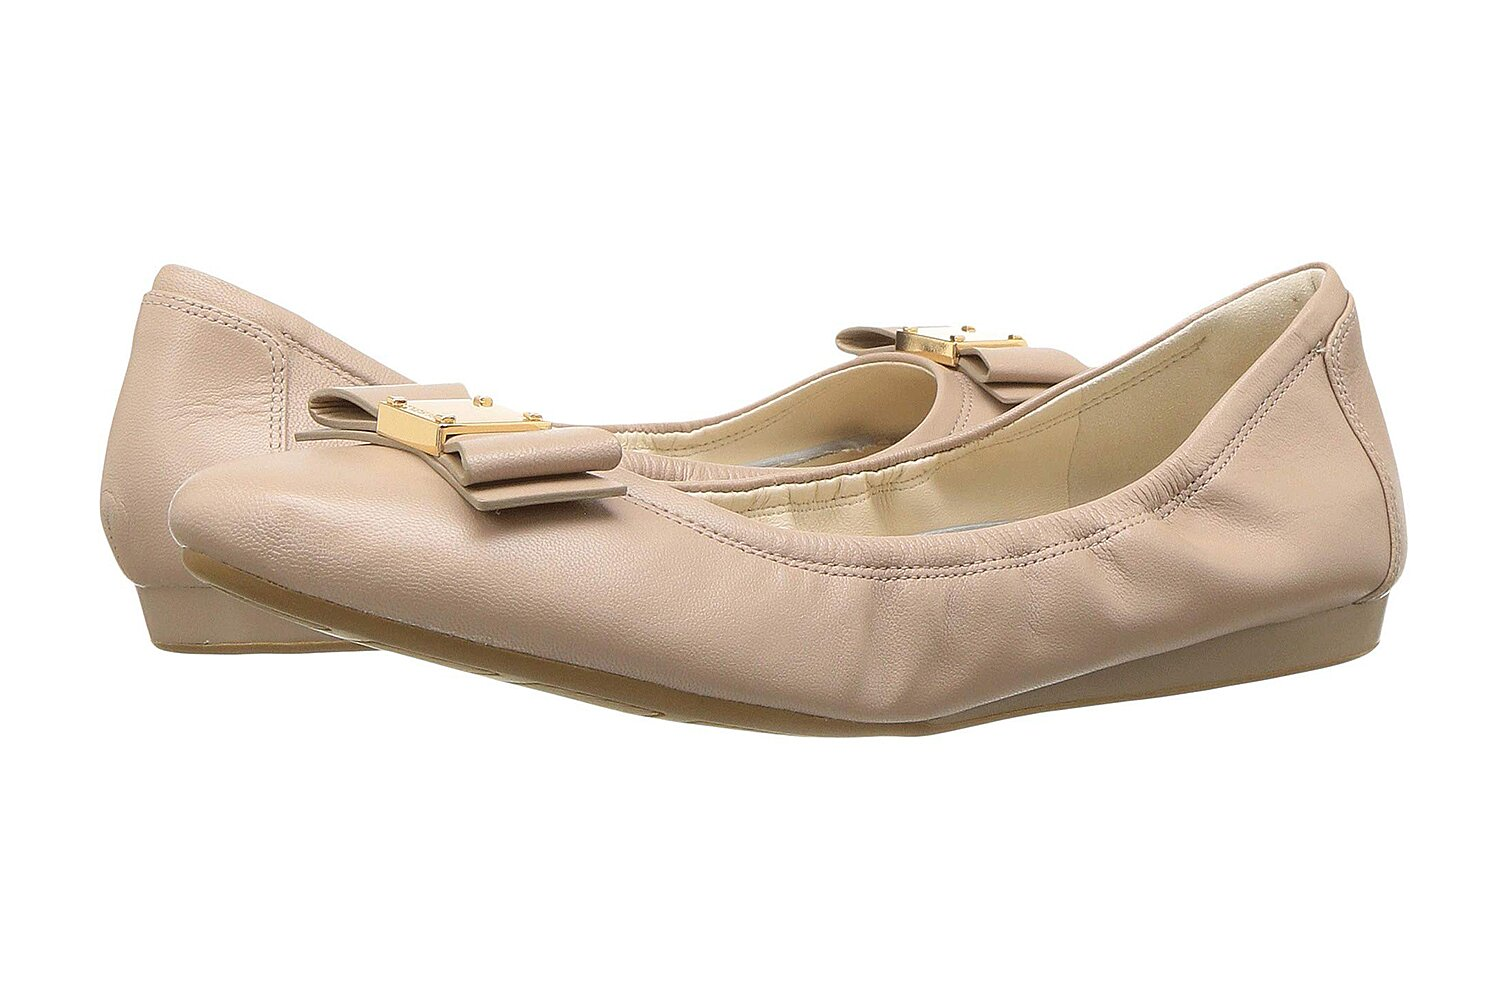 14 Most Comfortable Flats For 2020 According To Reviews Travel Leisure